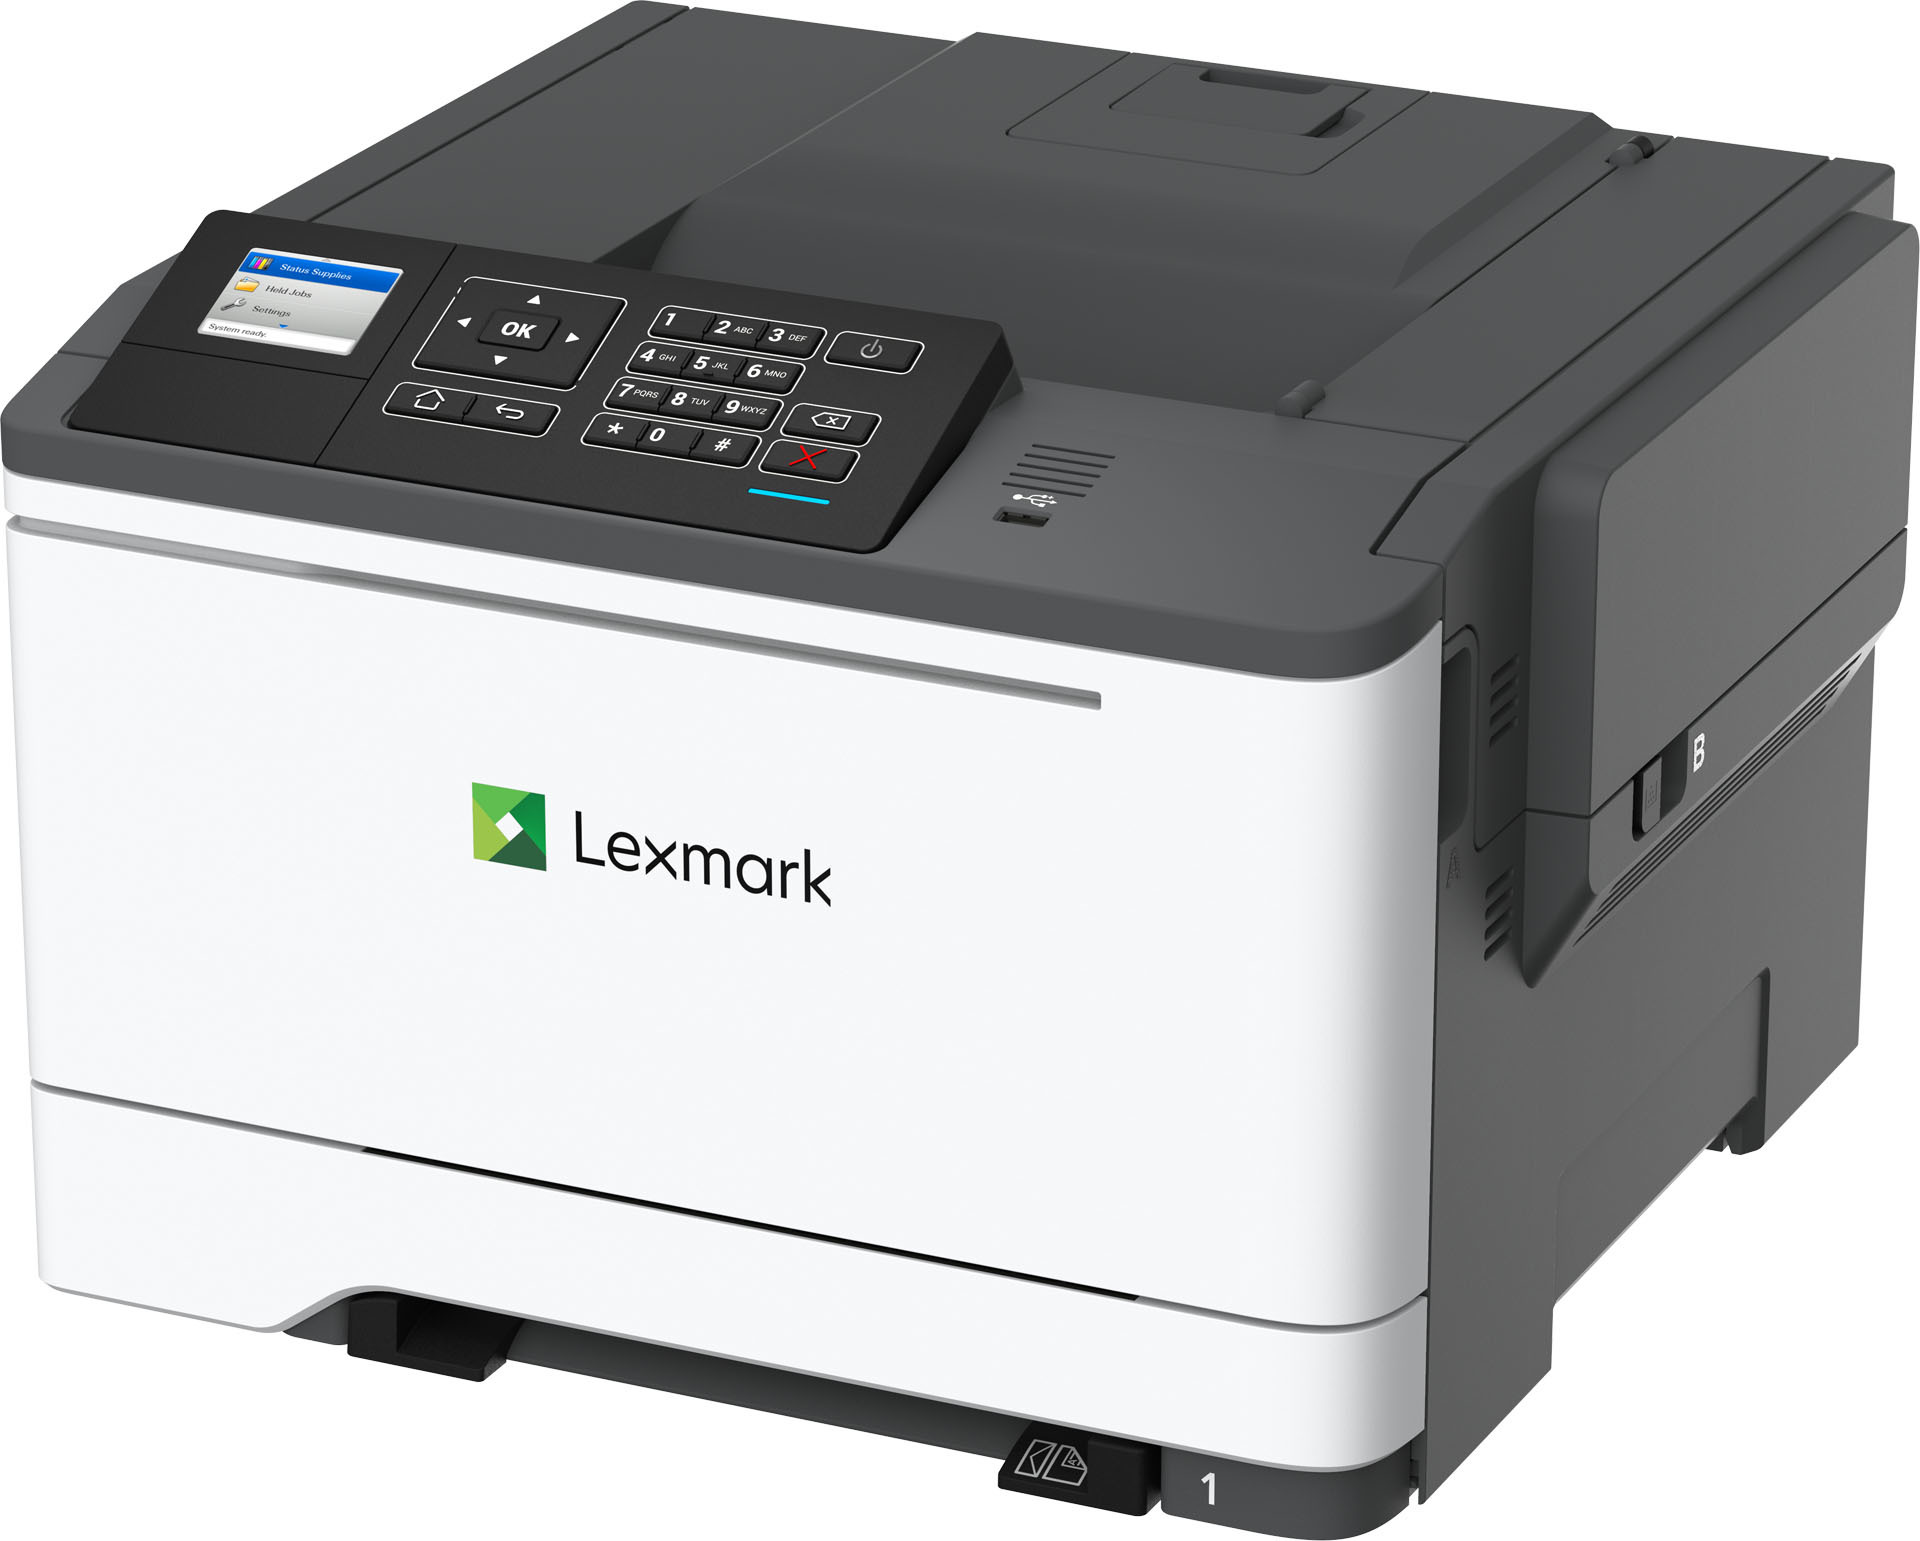 Lexmark C2535dw Wireless Color Printer 42CC160